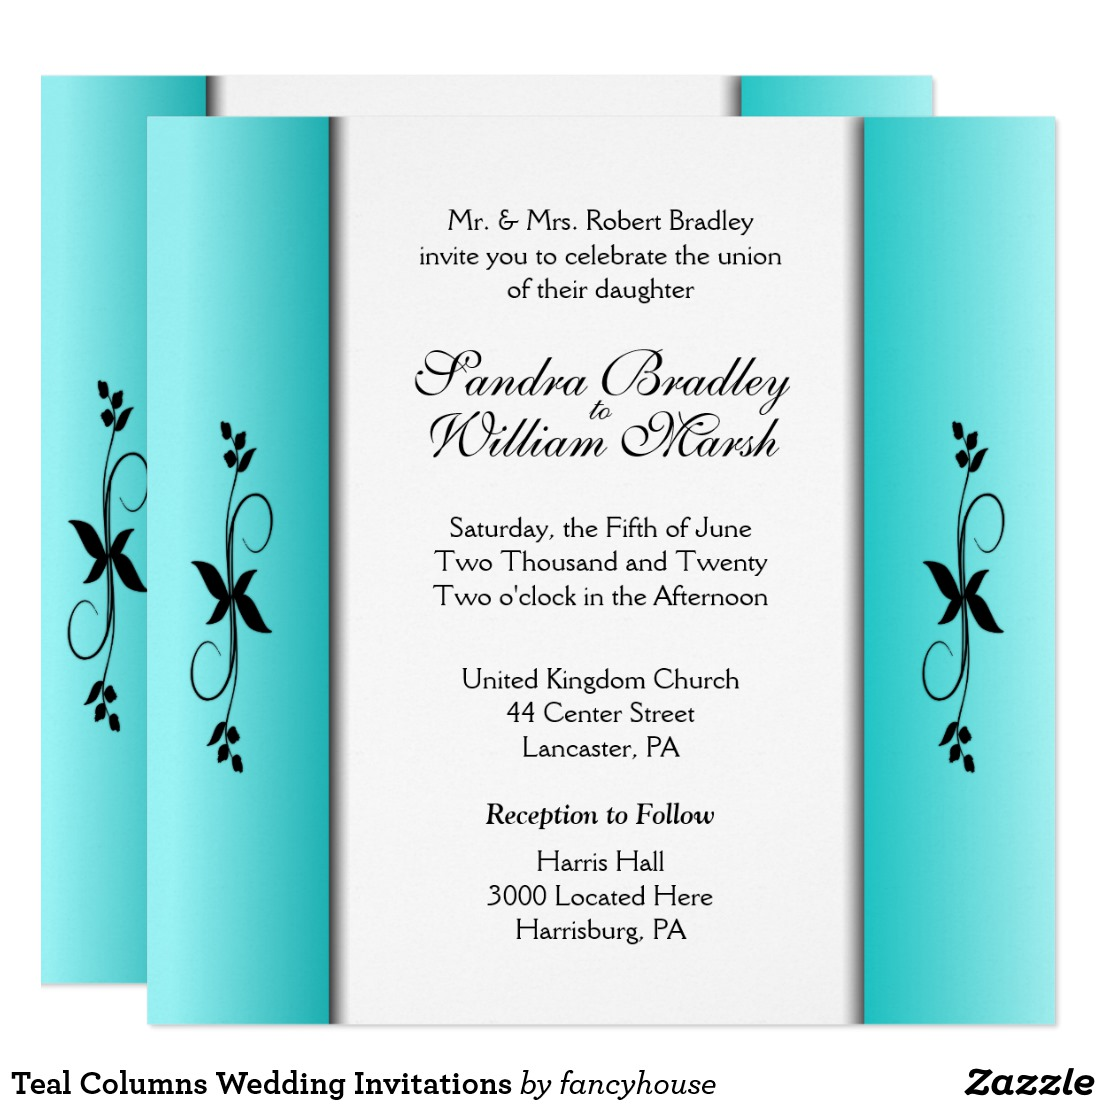 Teal Columns Wedding Invitations